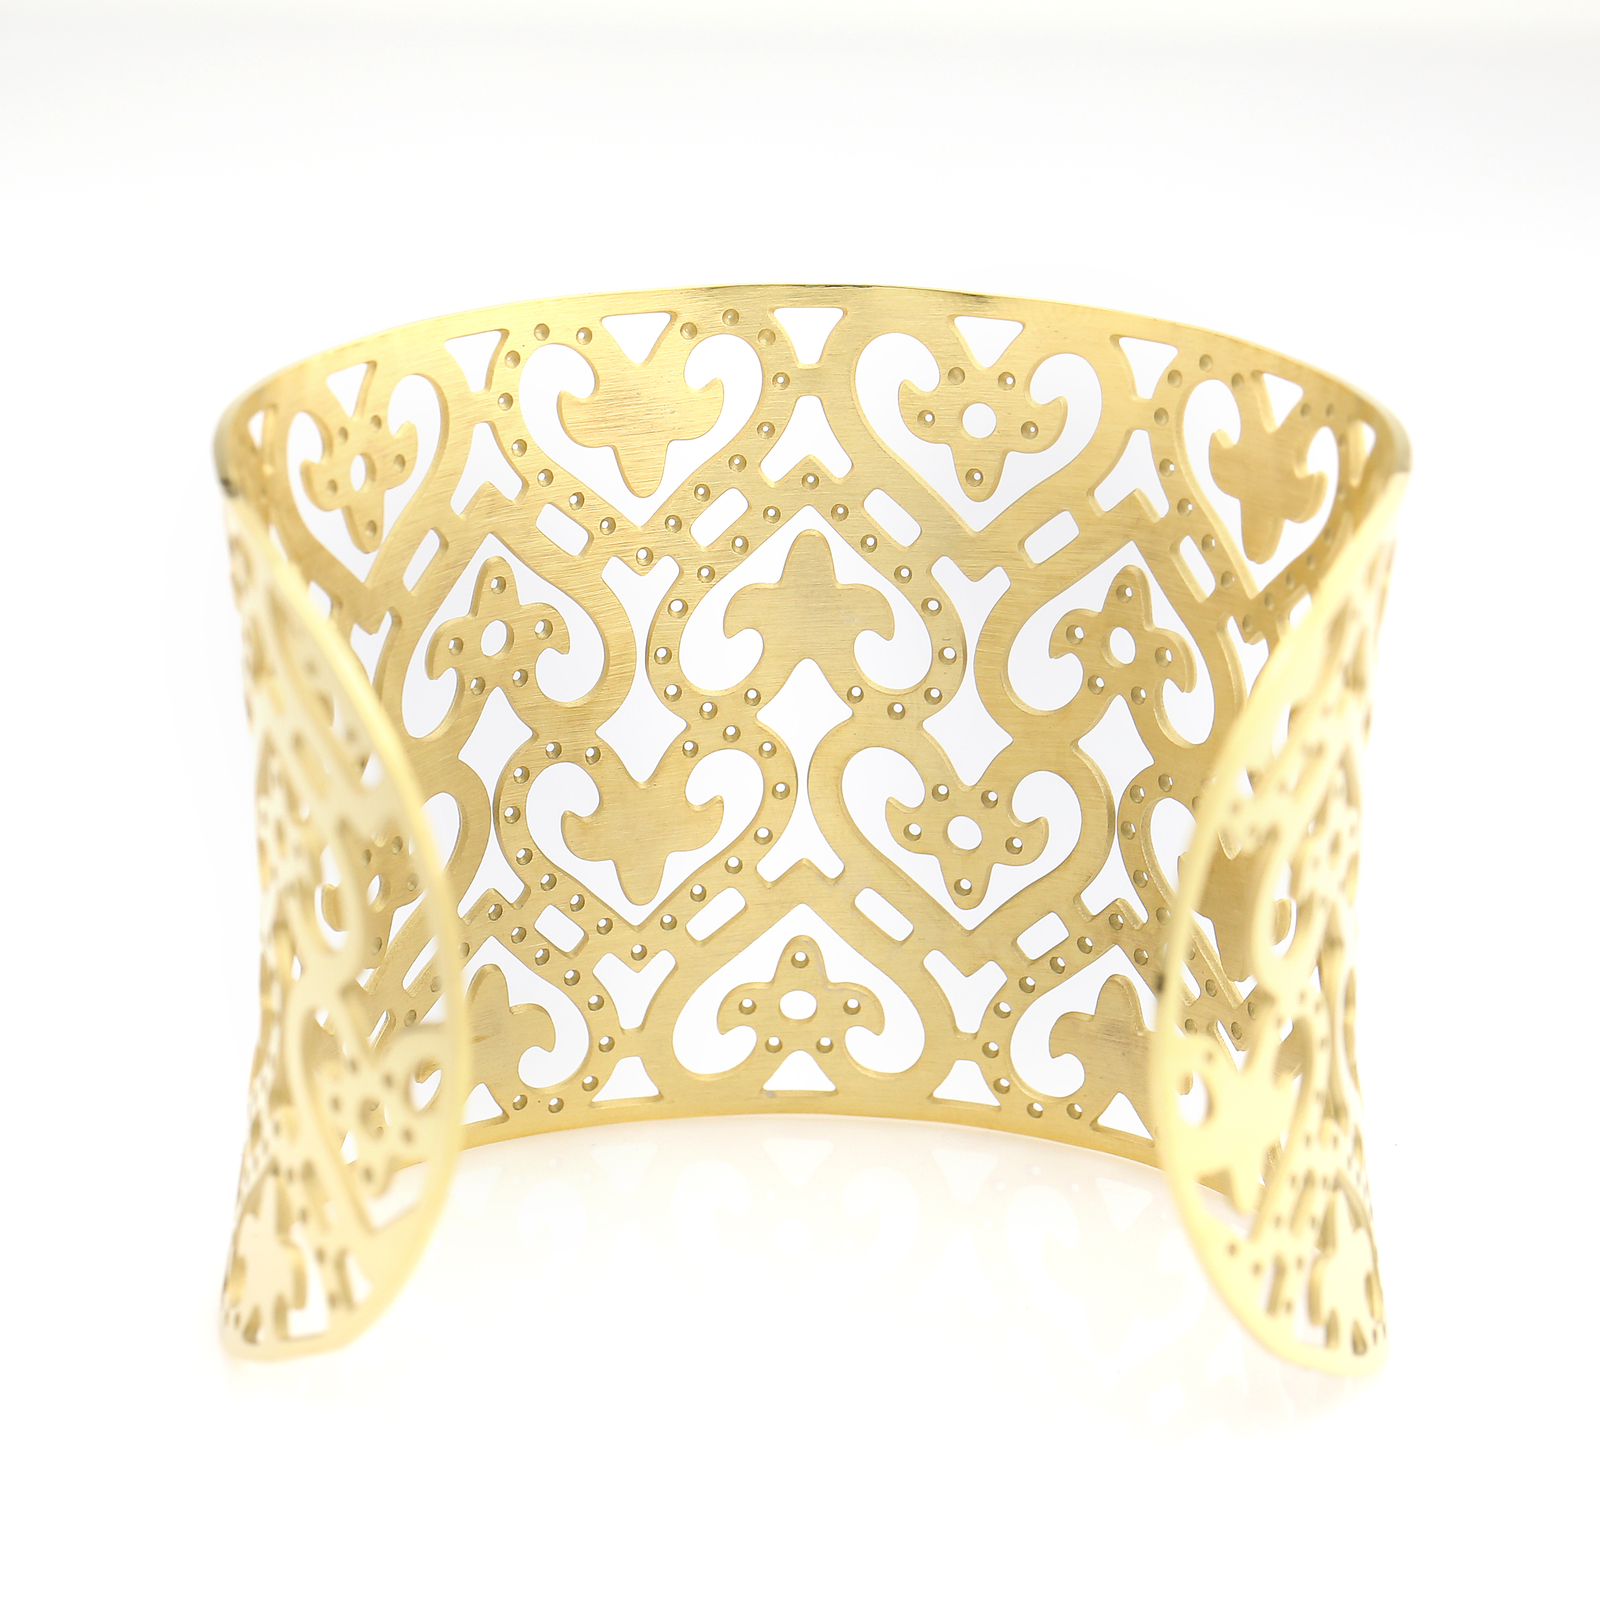 UNITED ELEGANCE Trendy Gold Tone Cuff Bracelet With Intricate Cut Out Design